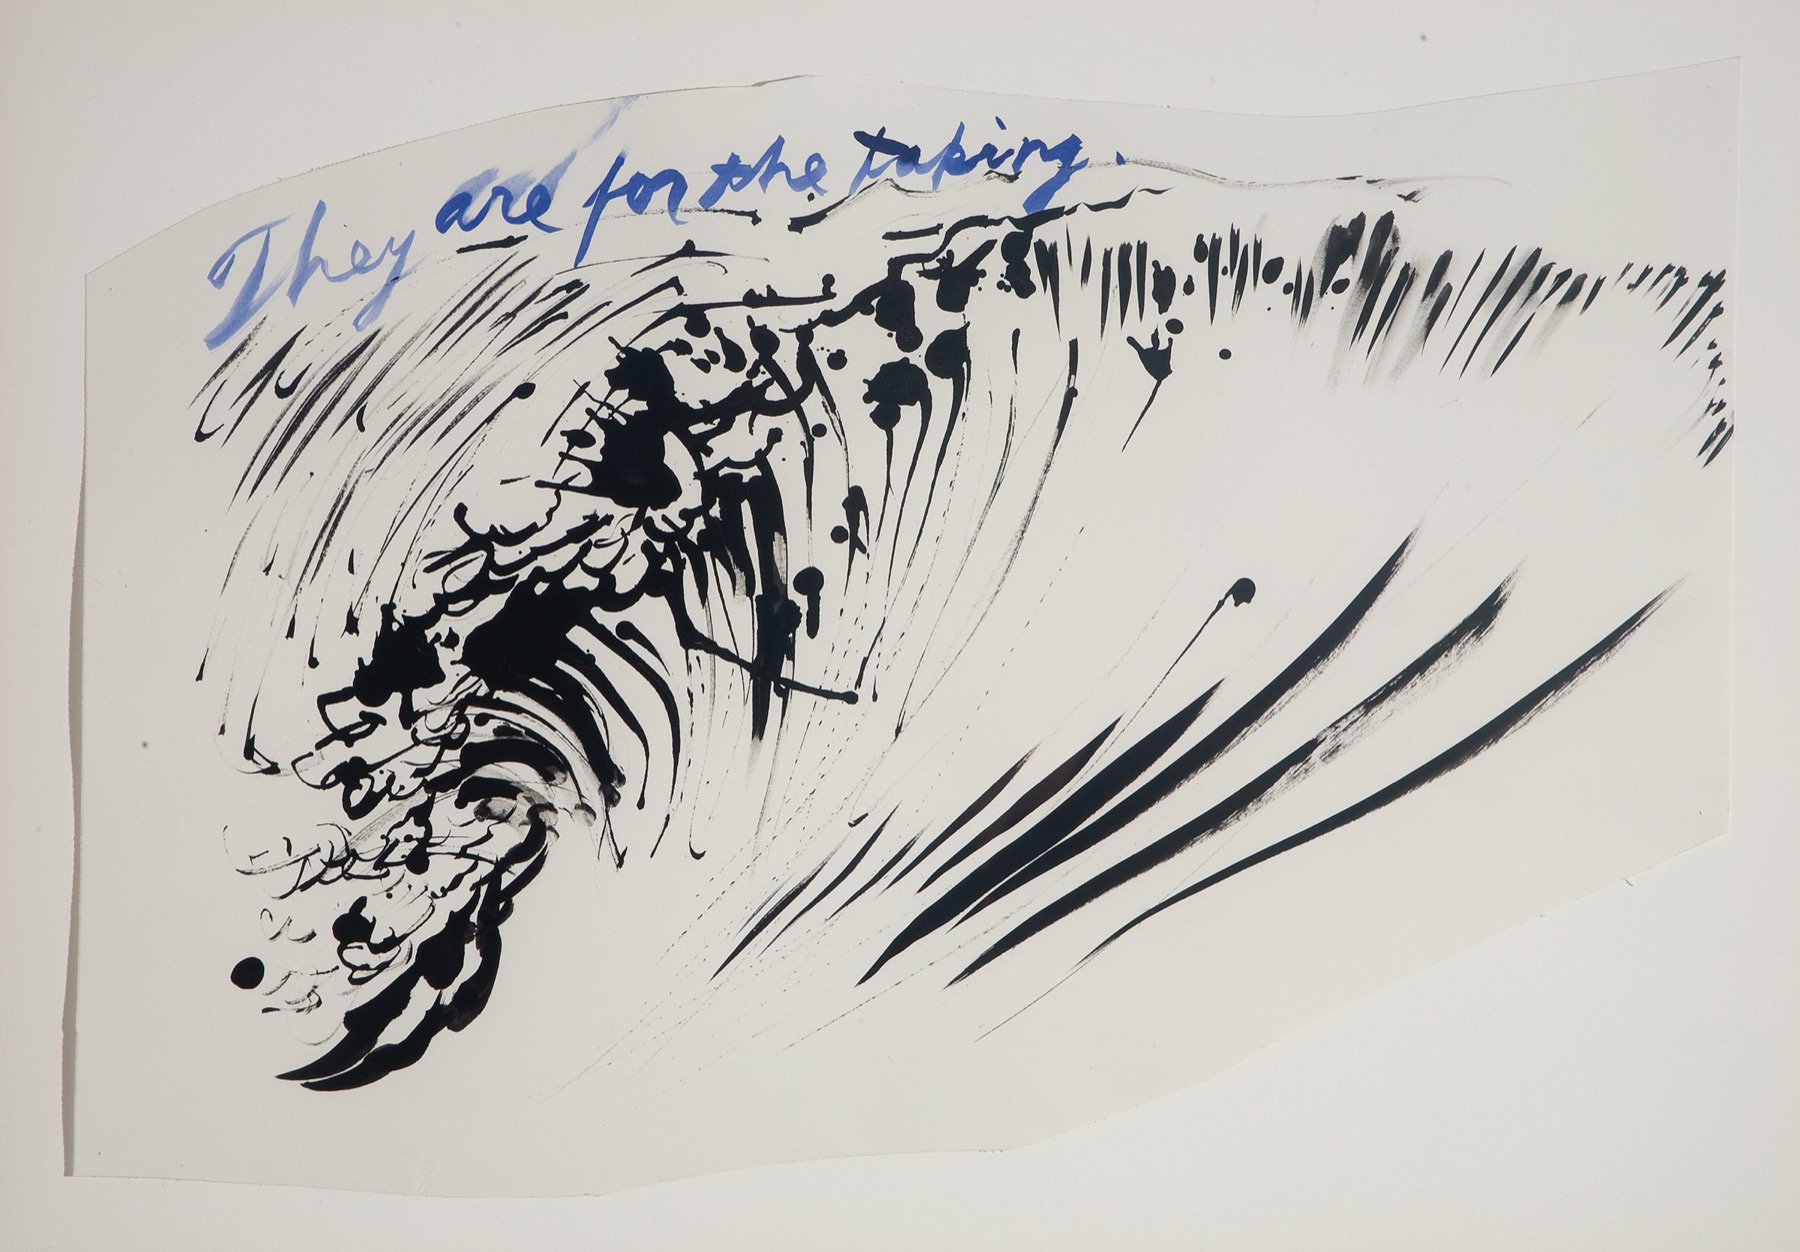 Image of Raymond Pettibon, Untitled (They are for the taking), 2003